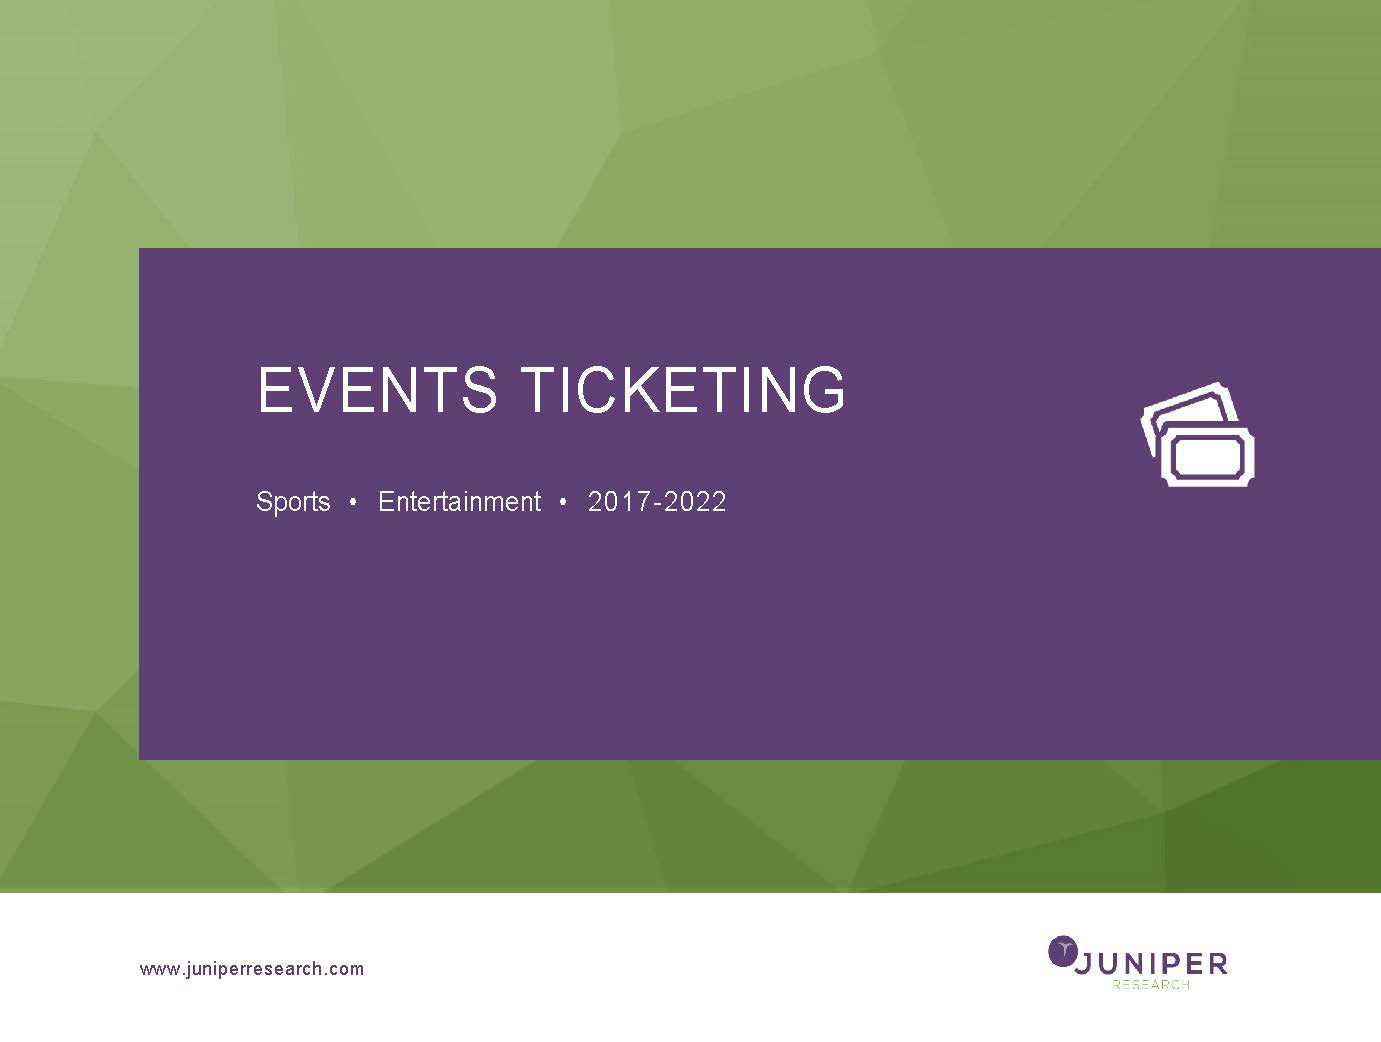 Events Ticketing 2017-2022